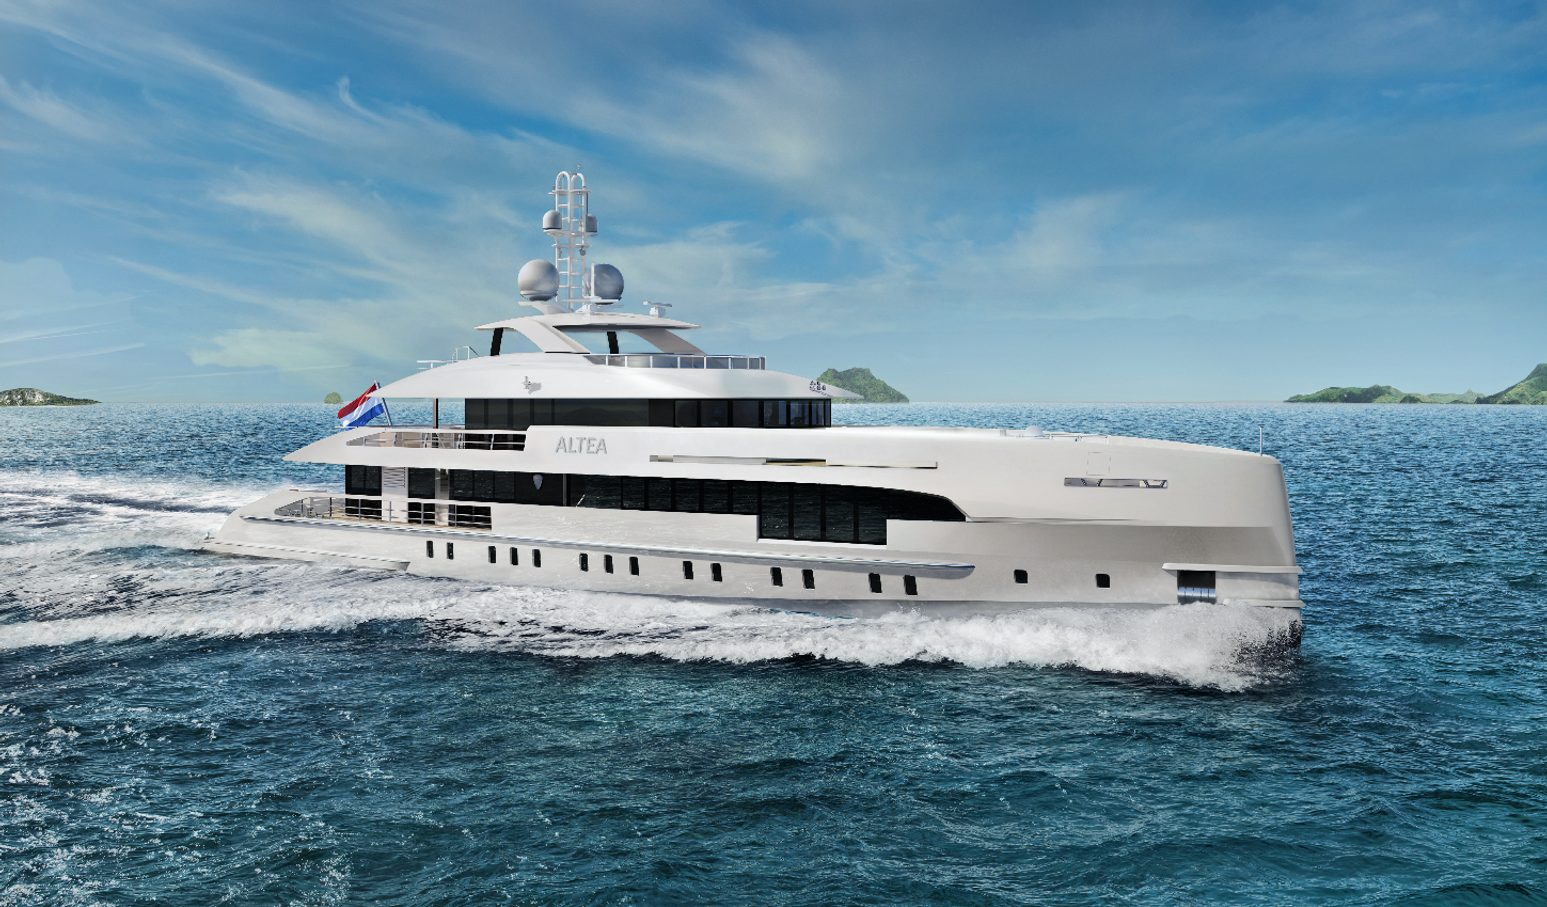 Motor yacht project Altea launched by Heesen